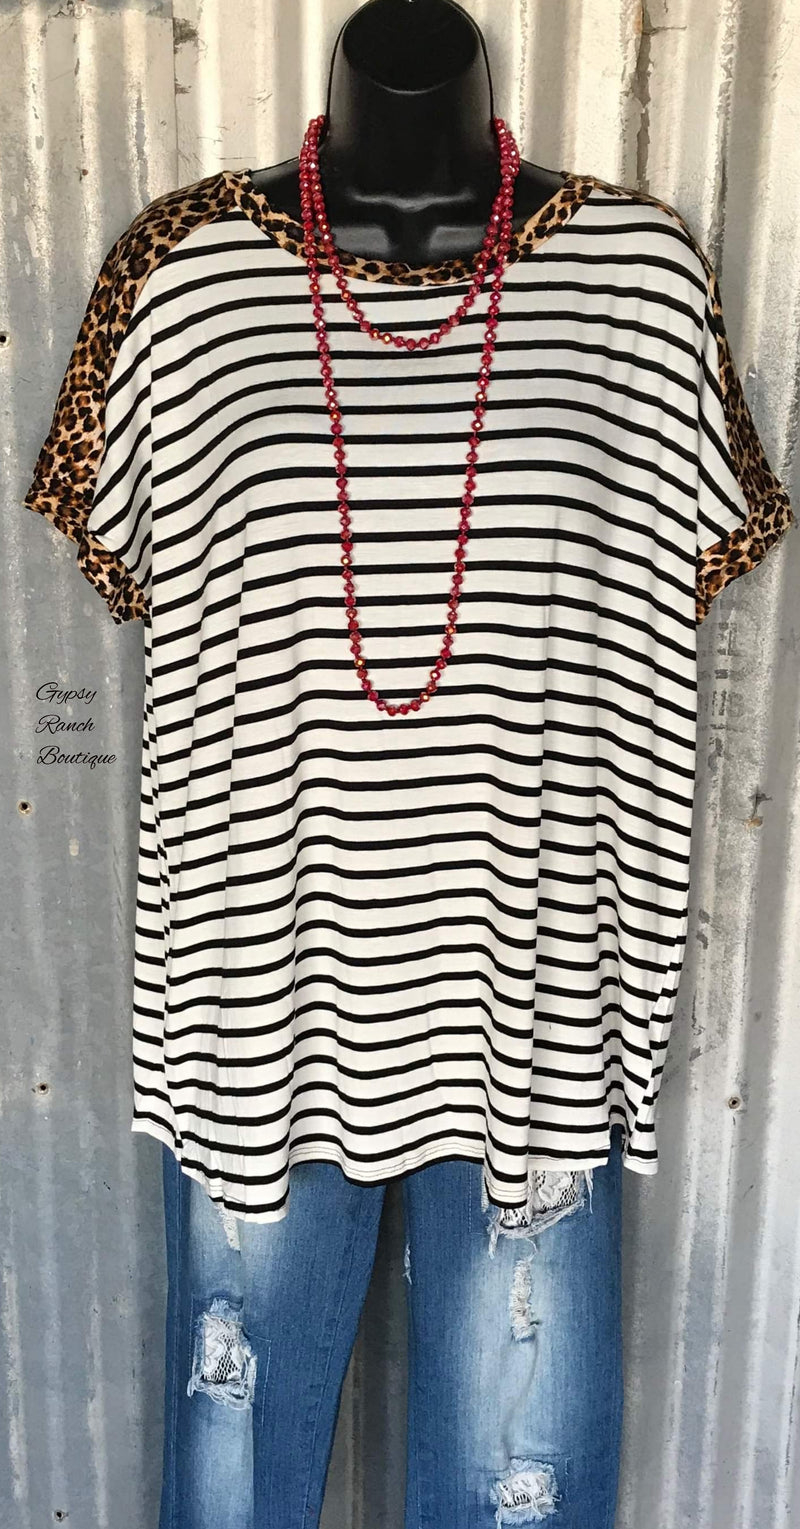 Ramsey Stripe Leopard Top - Also in Plus Size